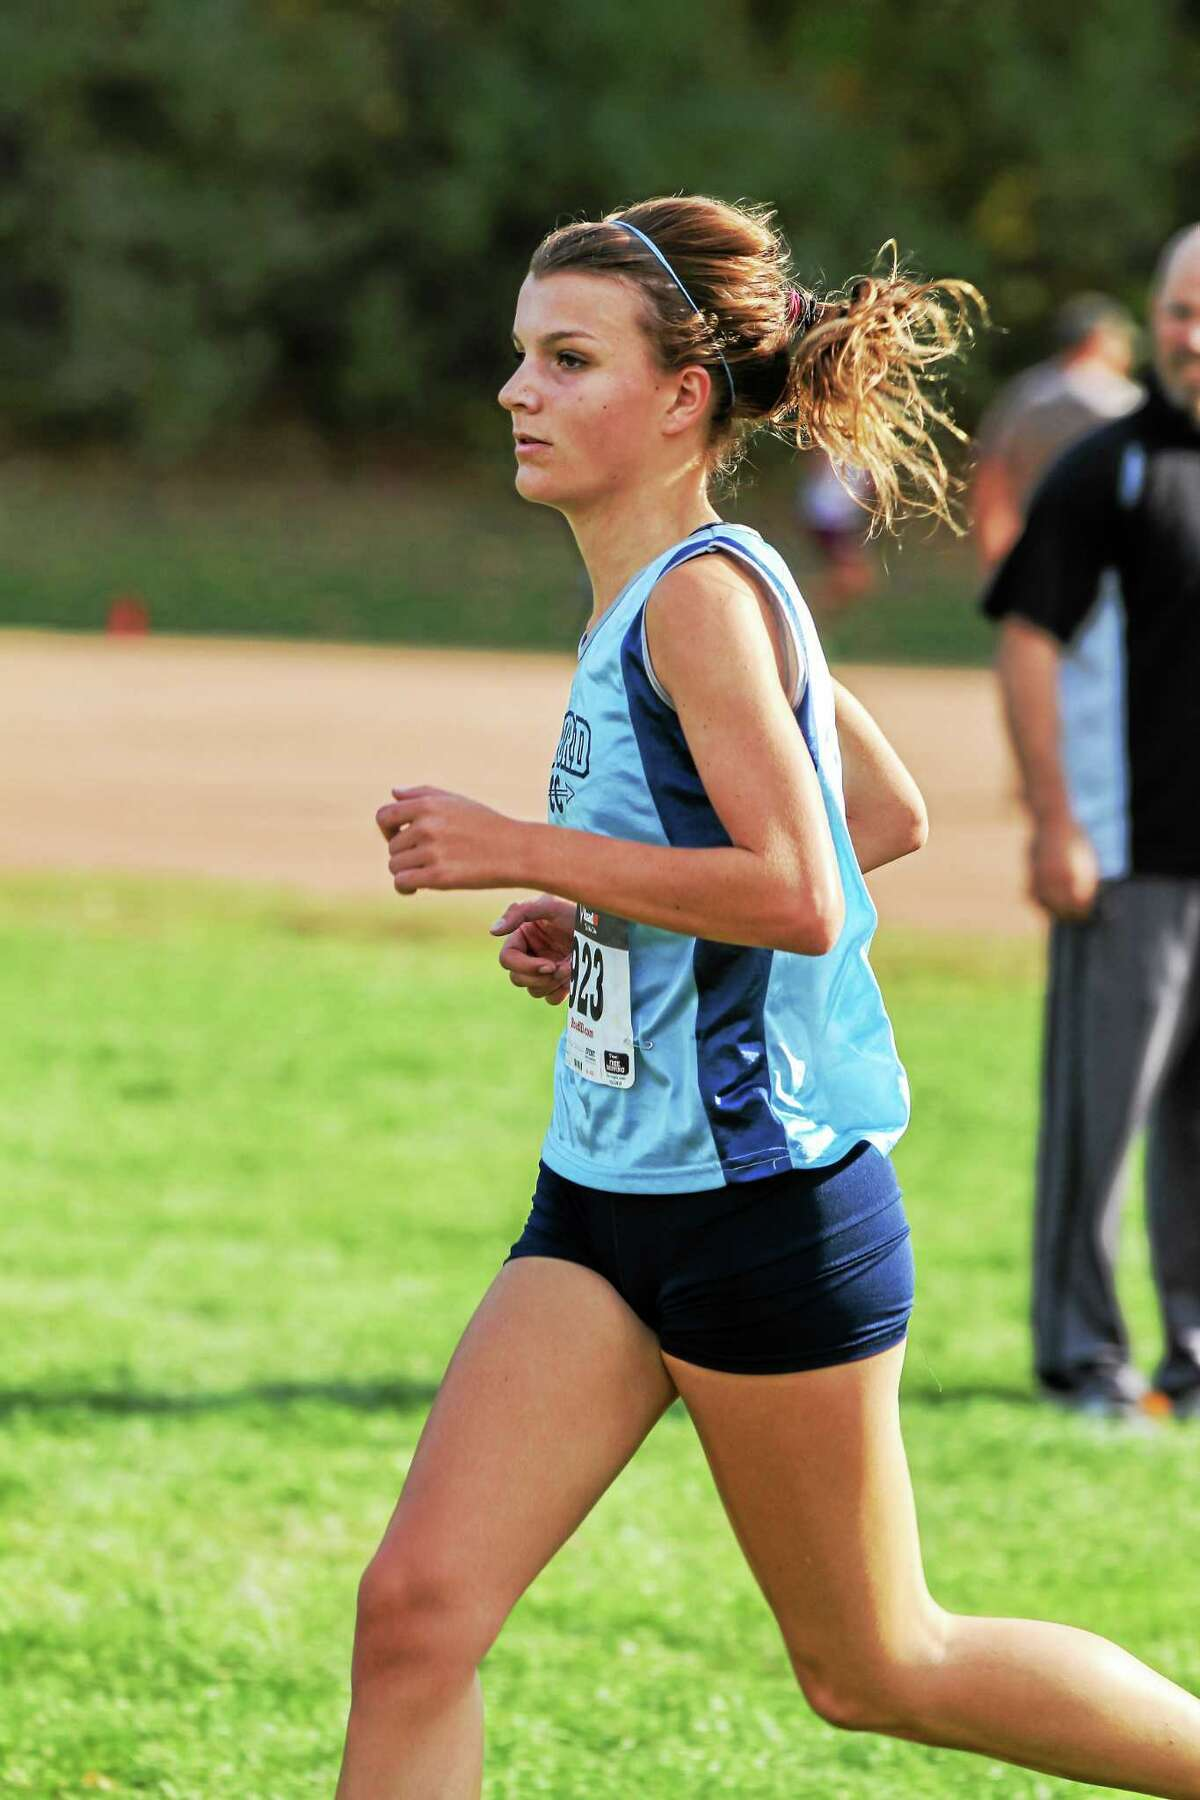 Kristen Barbaris was the first place finisher for the girls